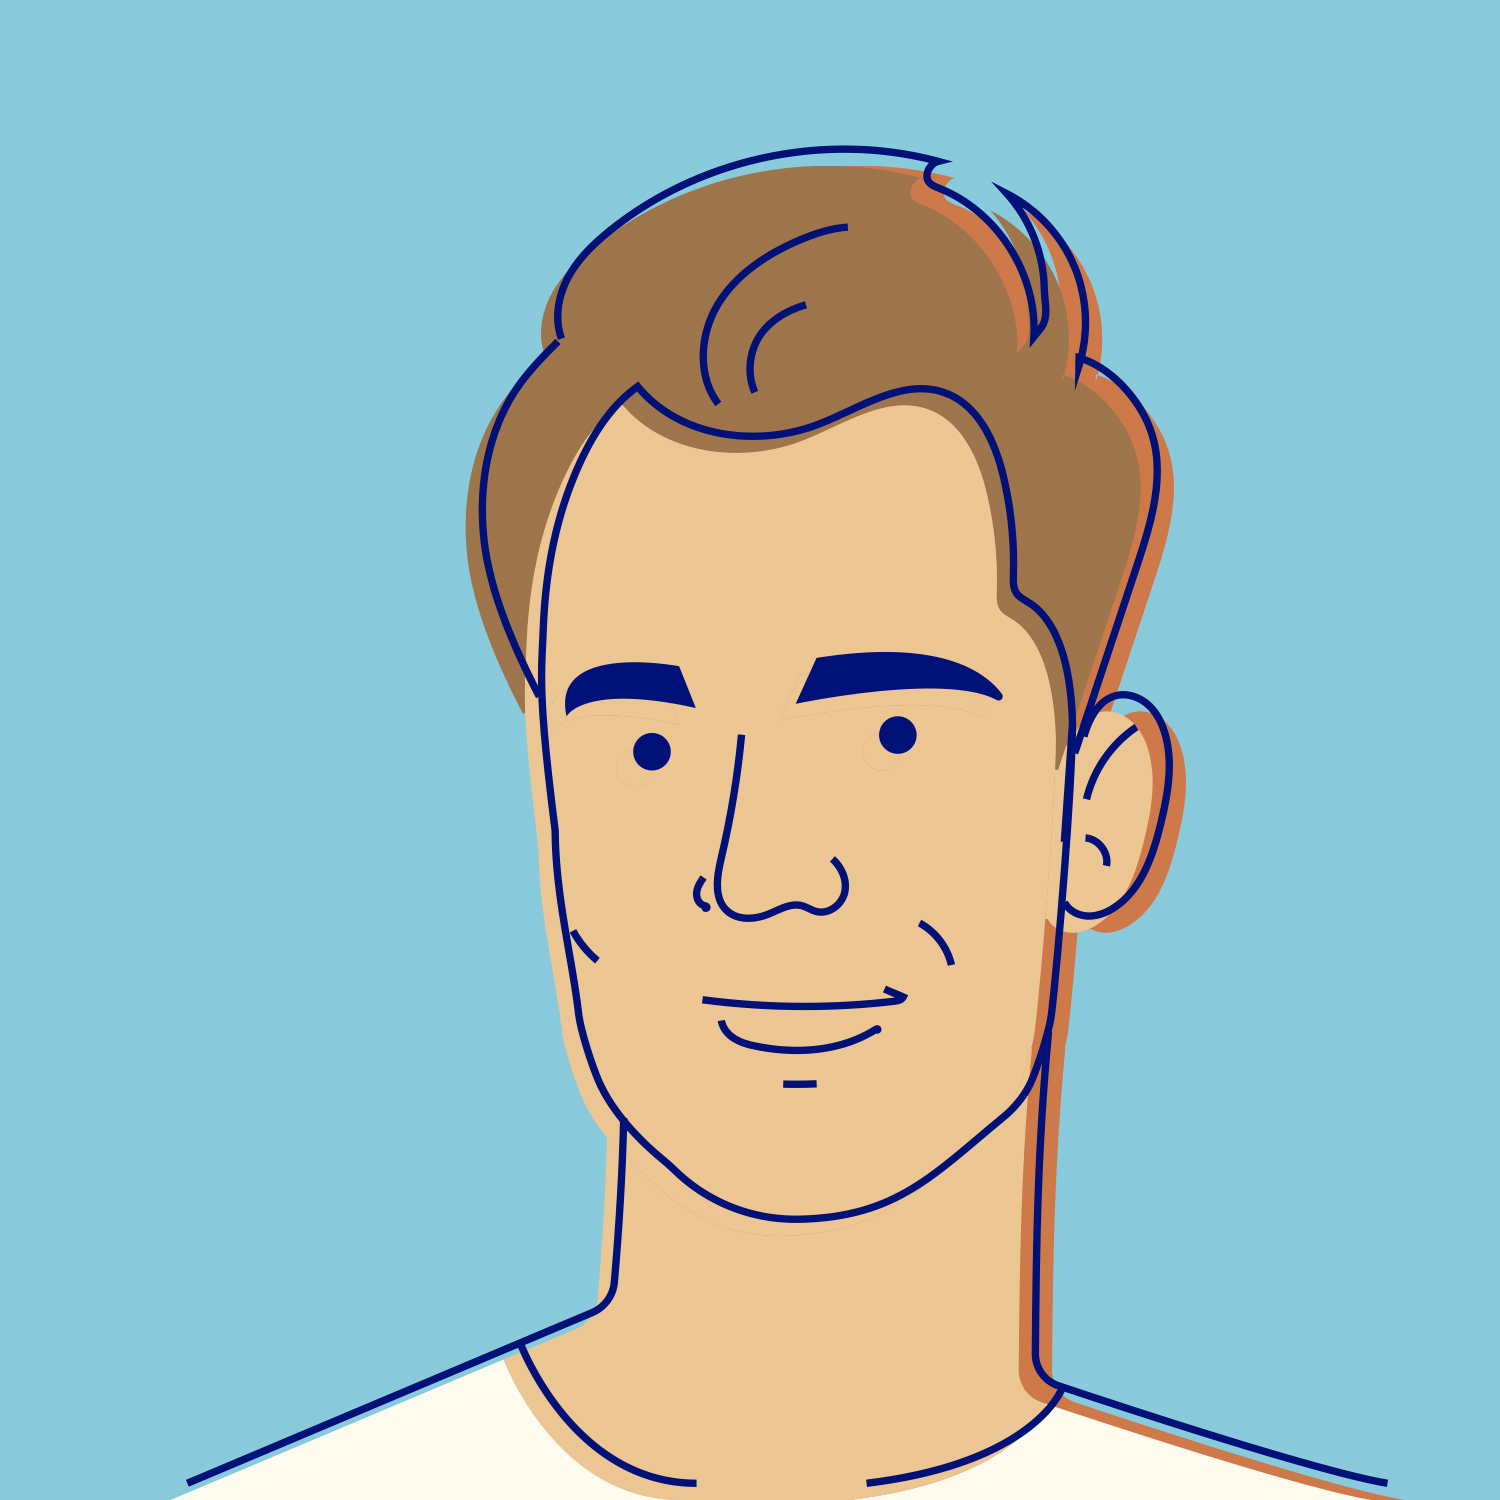 About the Author - Adam Hurly freelance travel and grooming writer, based in Berlin. He has written for GQ, Men's Journal, Esquire, Bloomberg, Condé Nast Traveler, and more. He is a South Dakota USA native, and was most recently based in New York City and San Francisco. He now lives in Berlin.Illustration by Paul Tuller